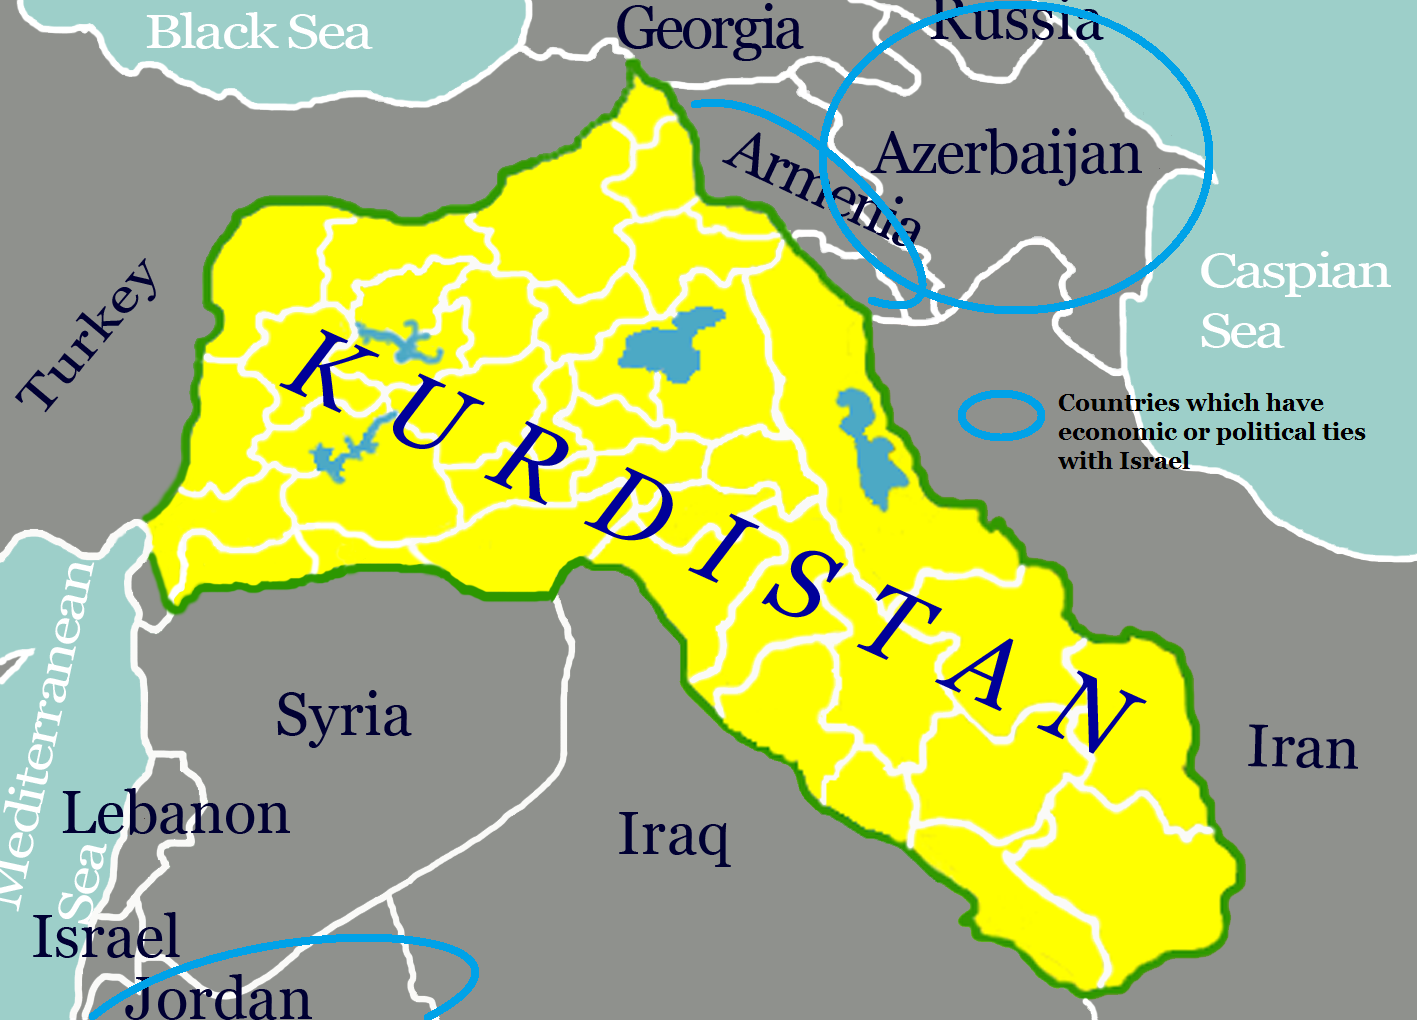 an analysis of past and present kurdish geopolitics 250000 free compare and contrast past and present papers & compare and contrast past and present essays at #1 essays bank since 1998 biggest and the best essays bank.